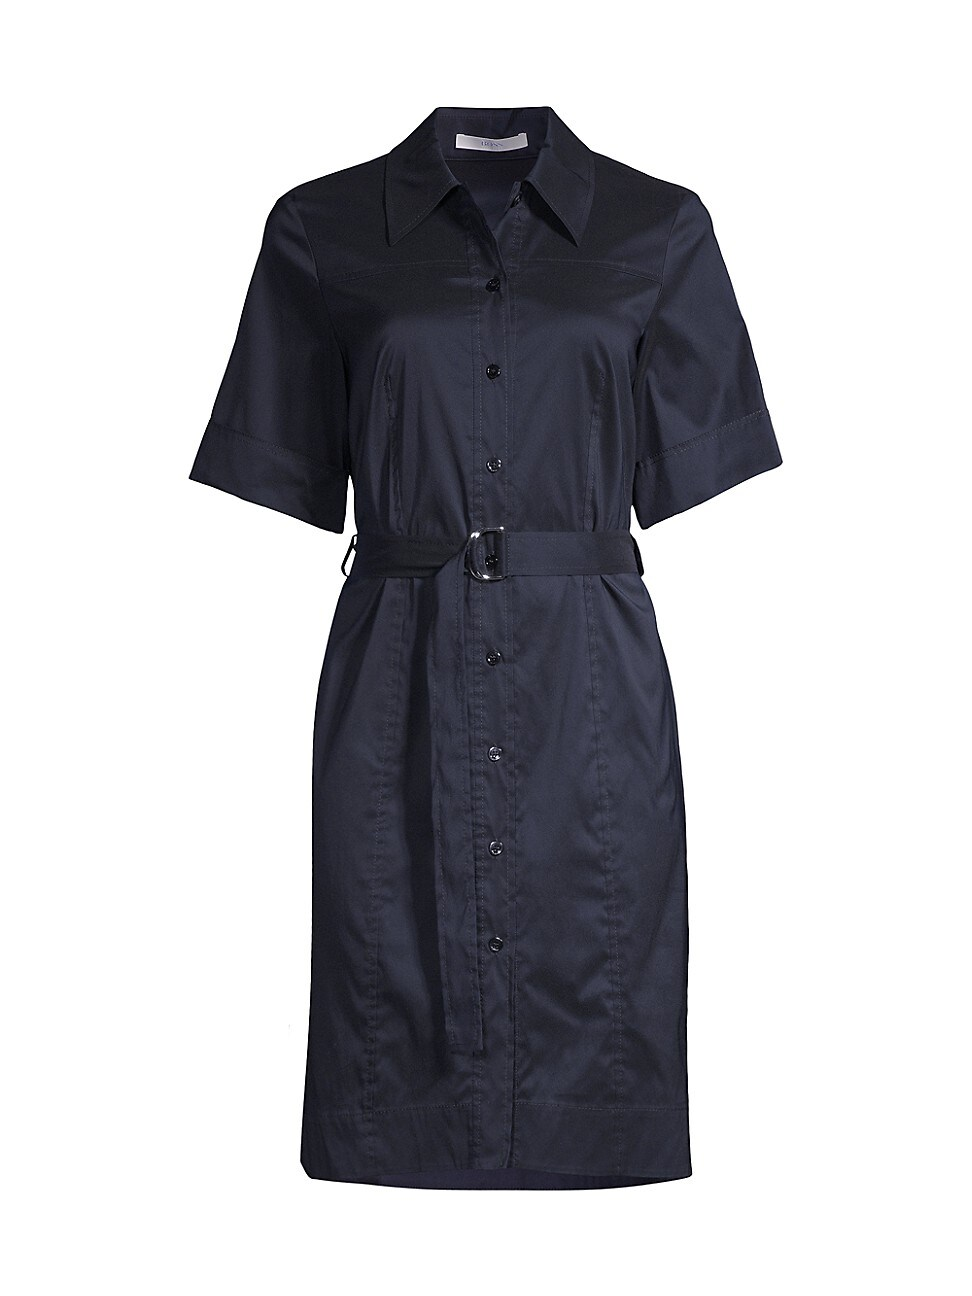 Hugo Boss WOMEN'S DASHILO BELTED SHIRTDRESS